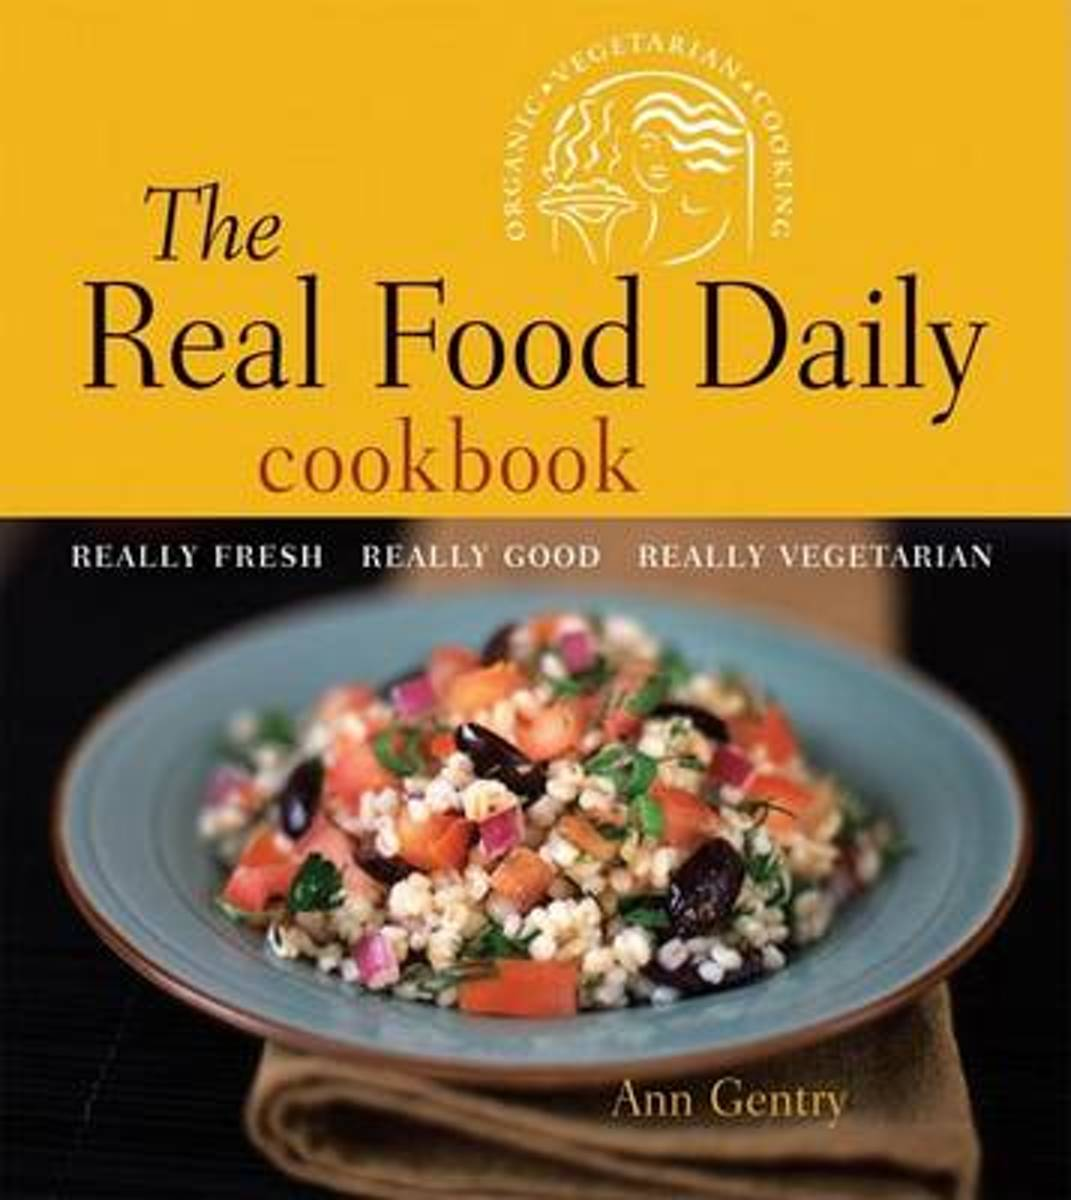 The Real Food Daily Cookbookian